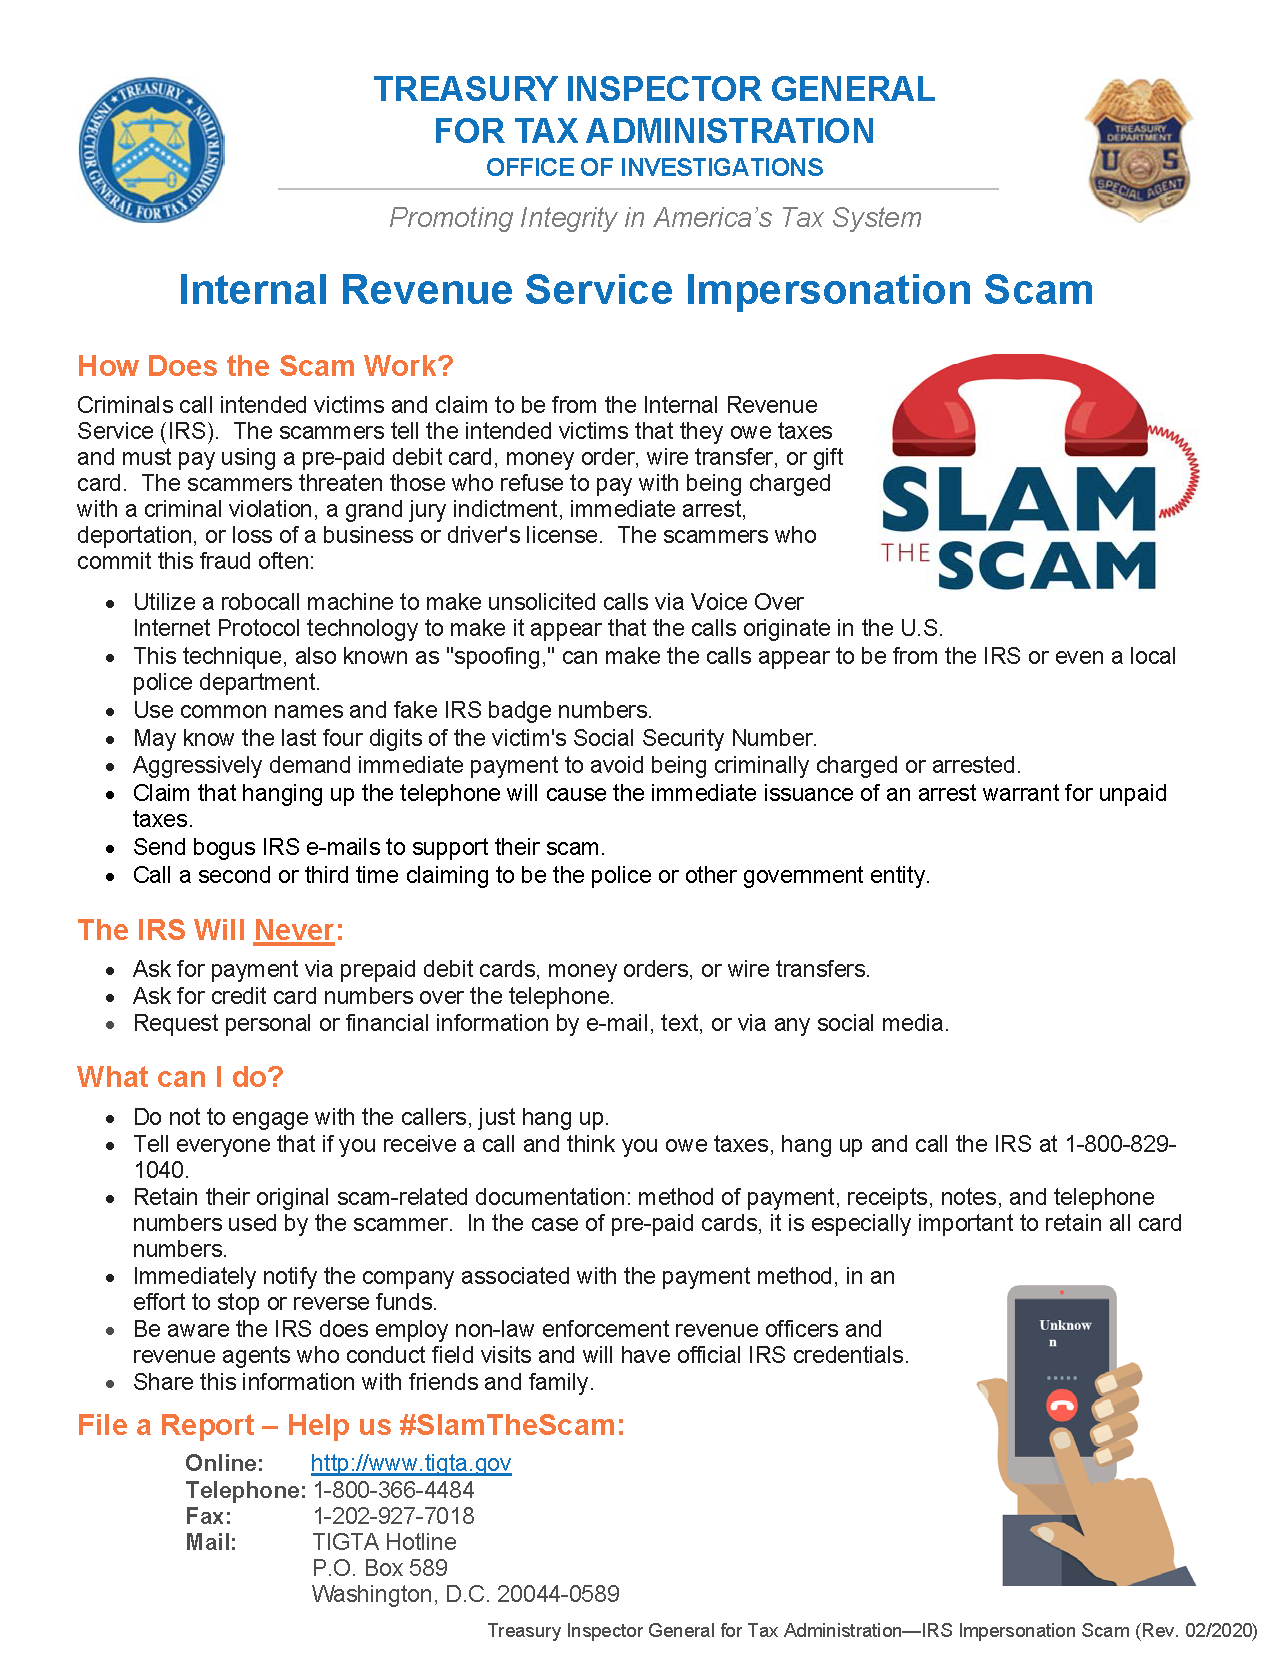 Slam_the_Scam_Flyer.png